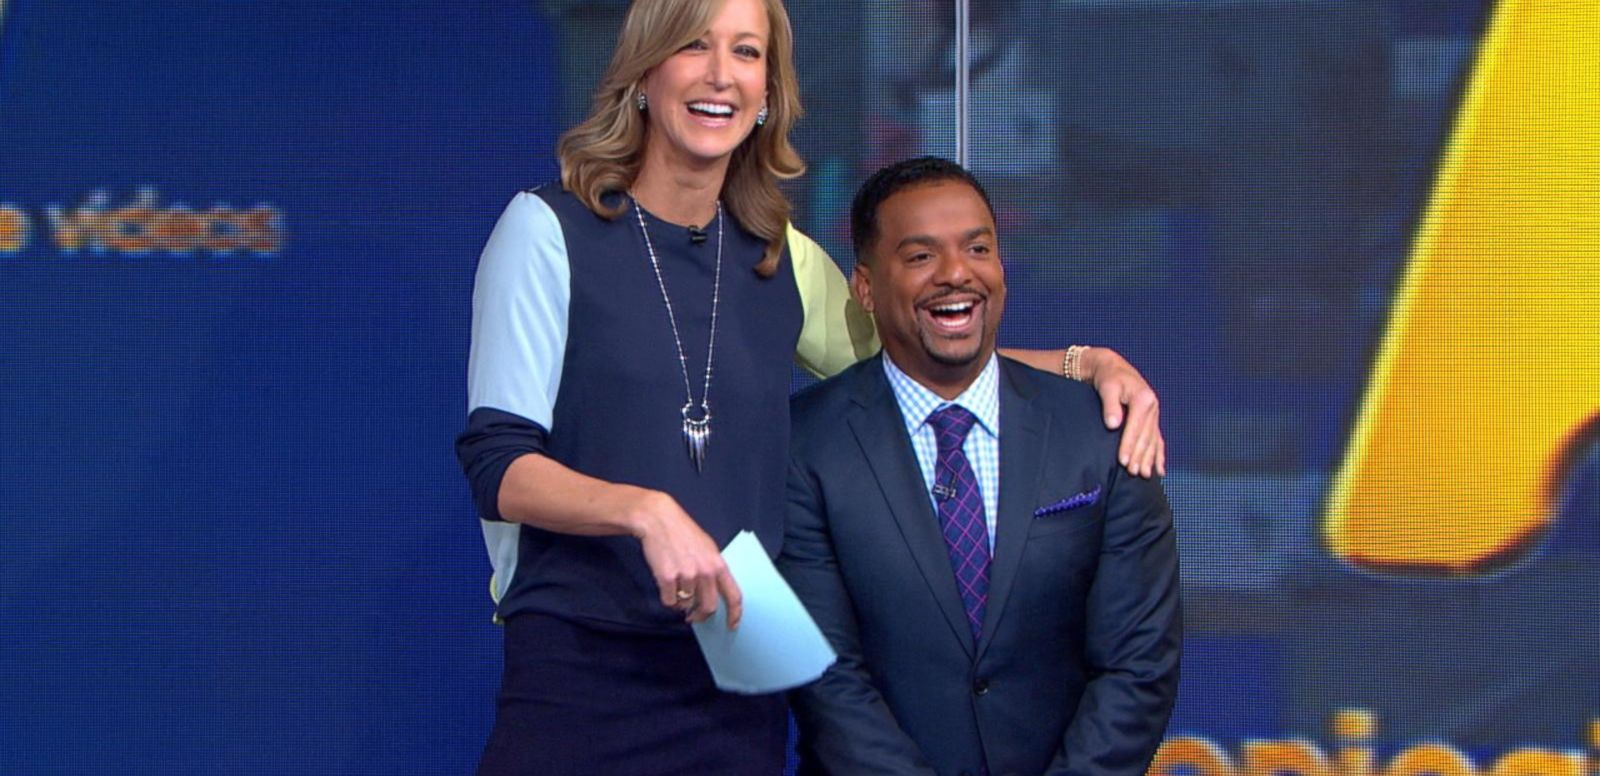 VIDEO: Alfonso Ribeiro to Host 'America's Funniest Home Videos'